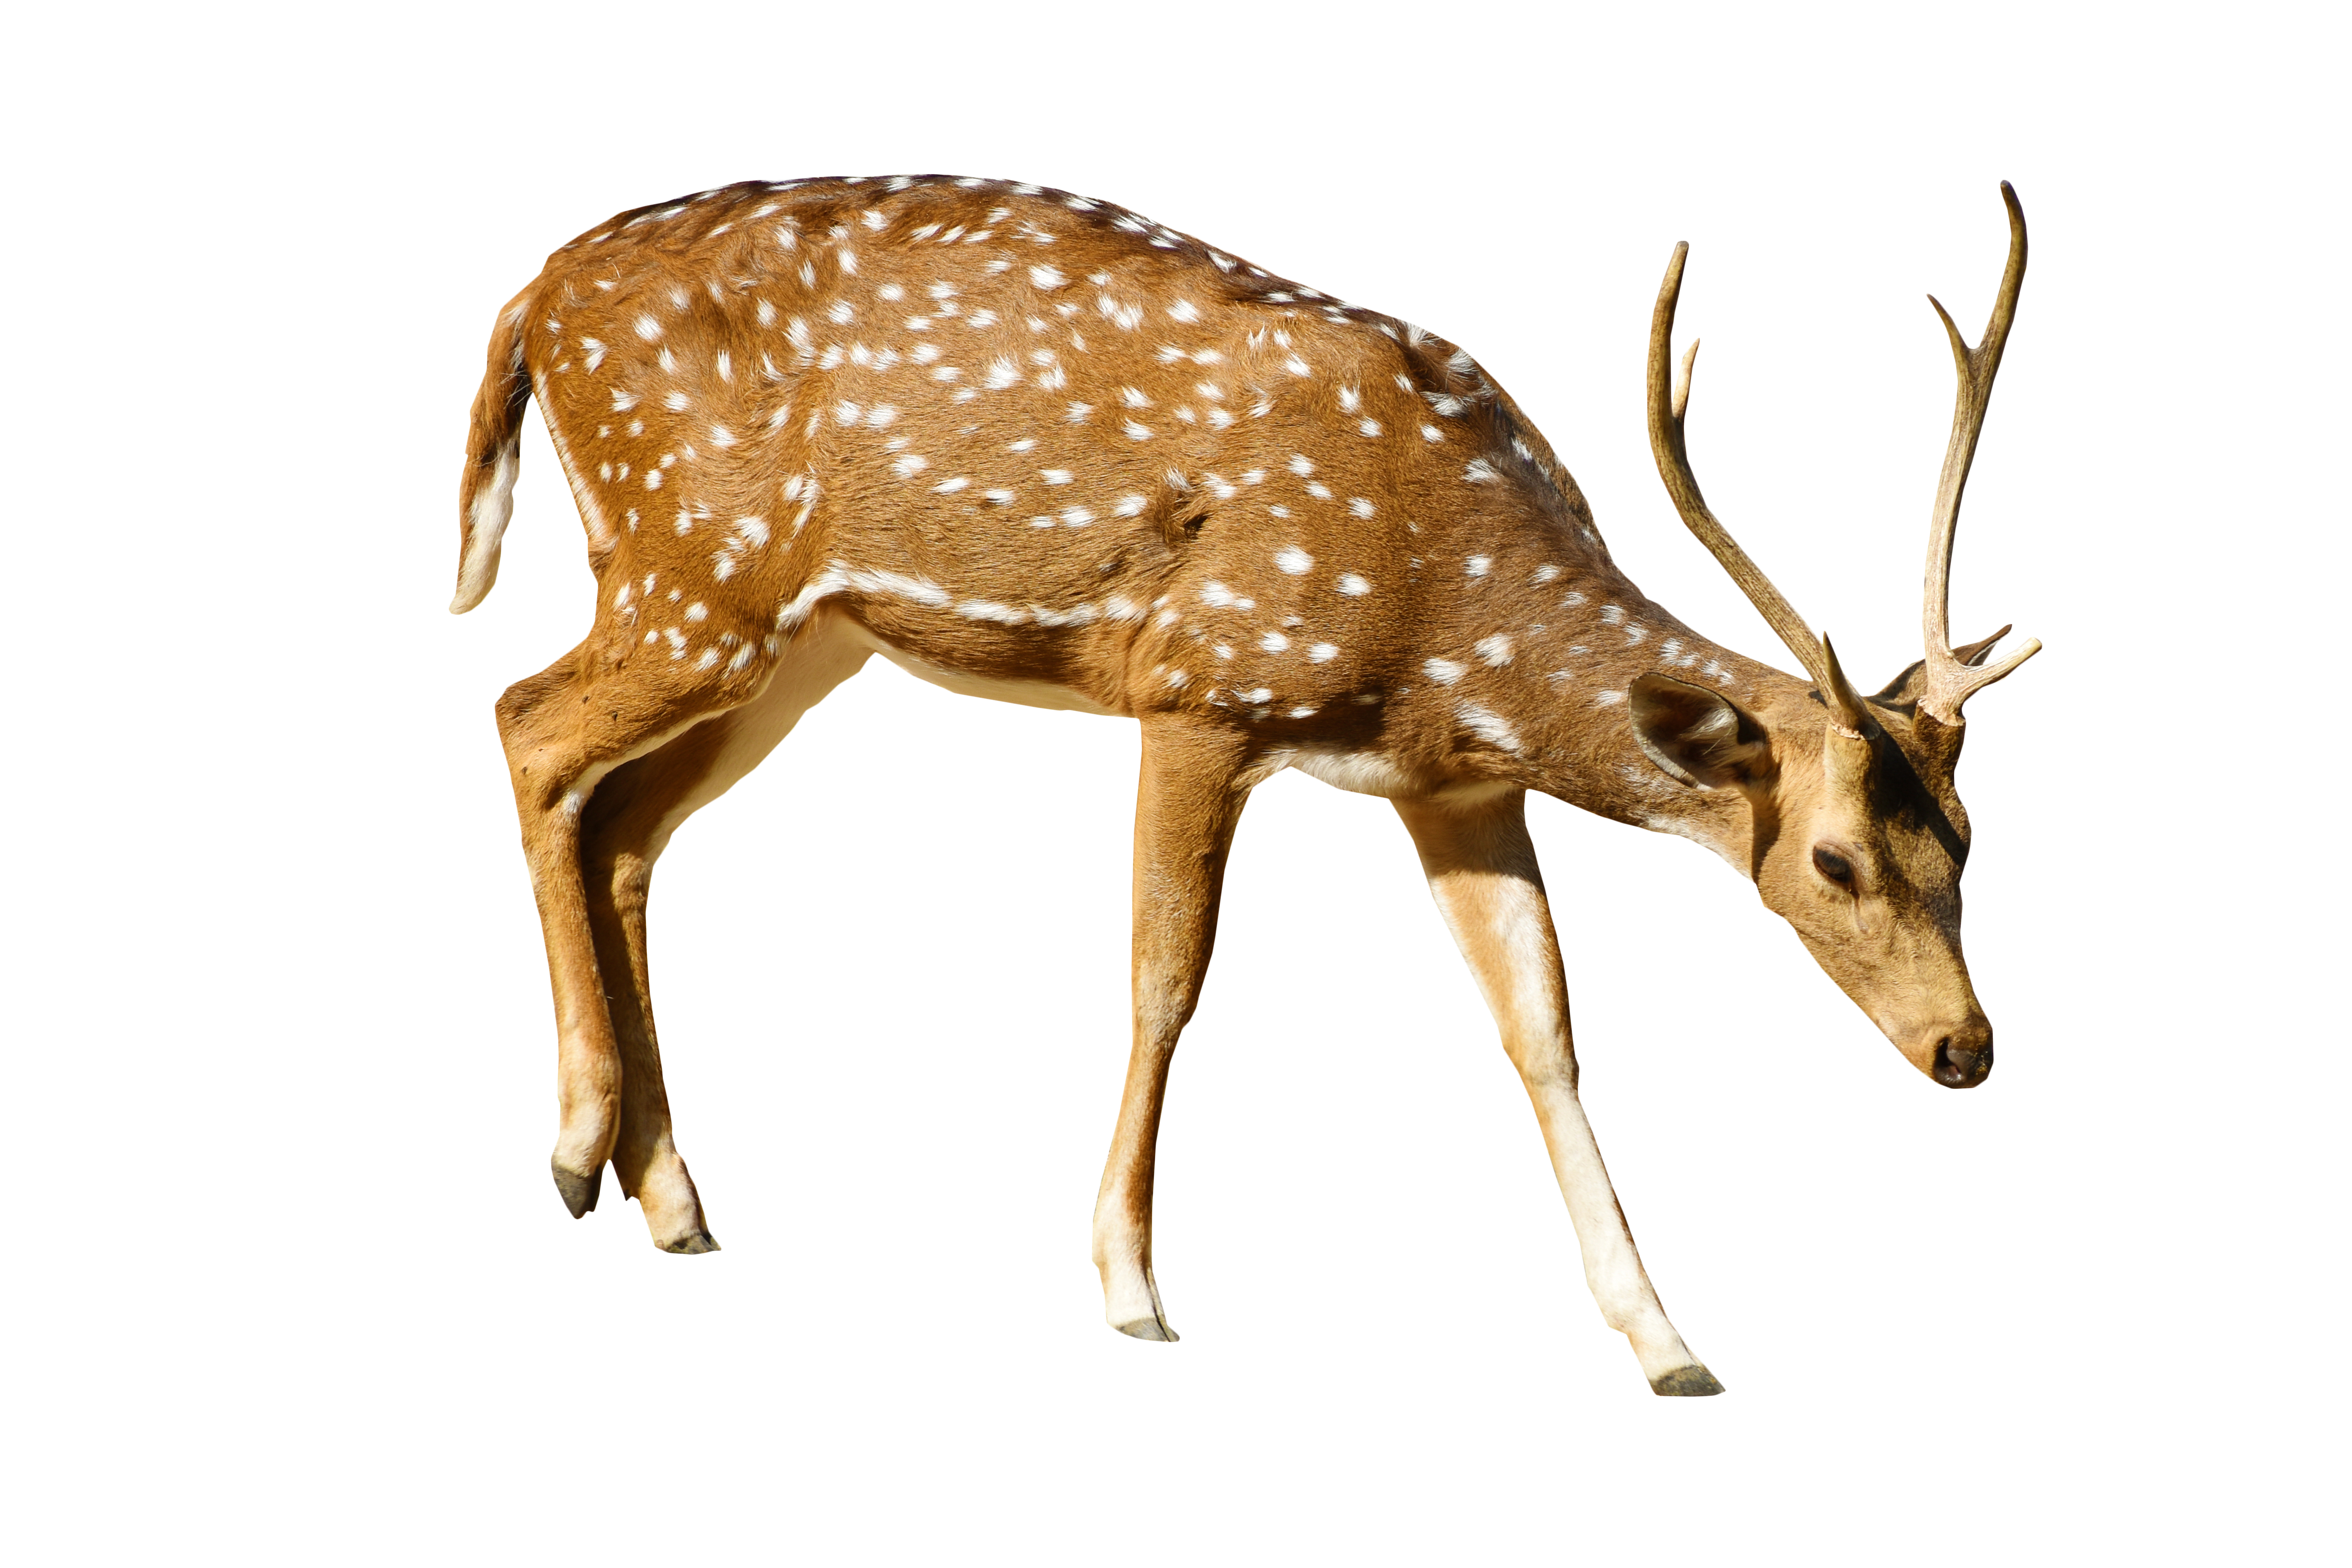 Brown Deer With White Spots Standing PNG Image.